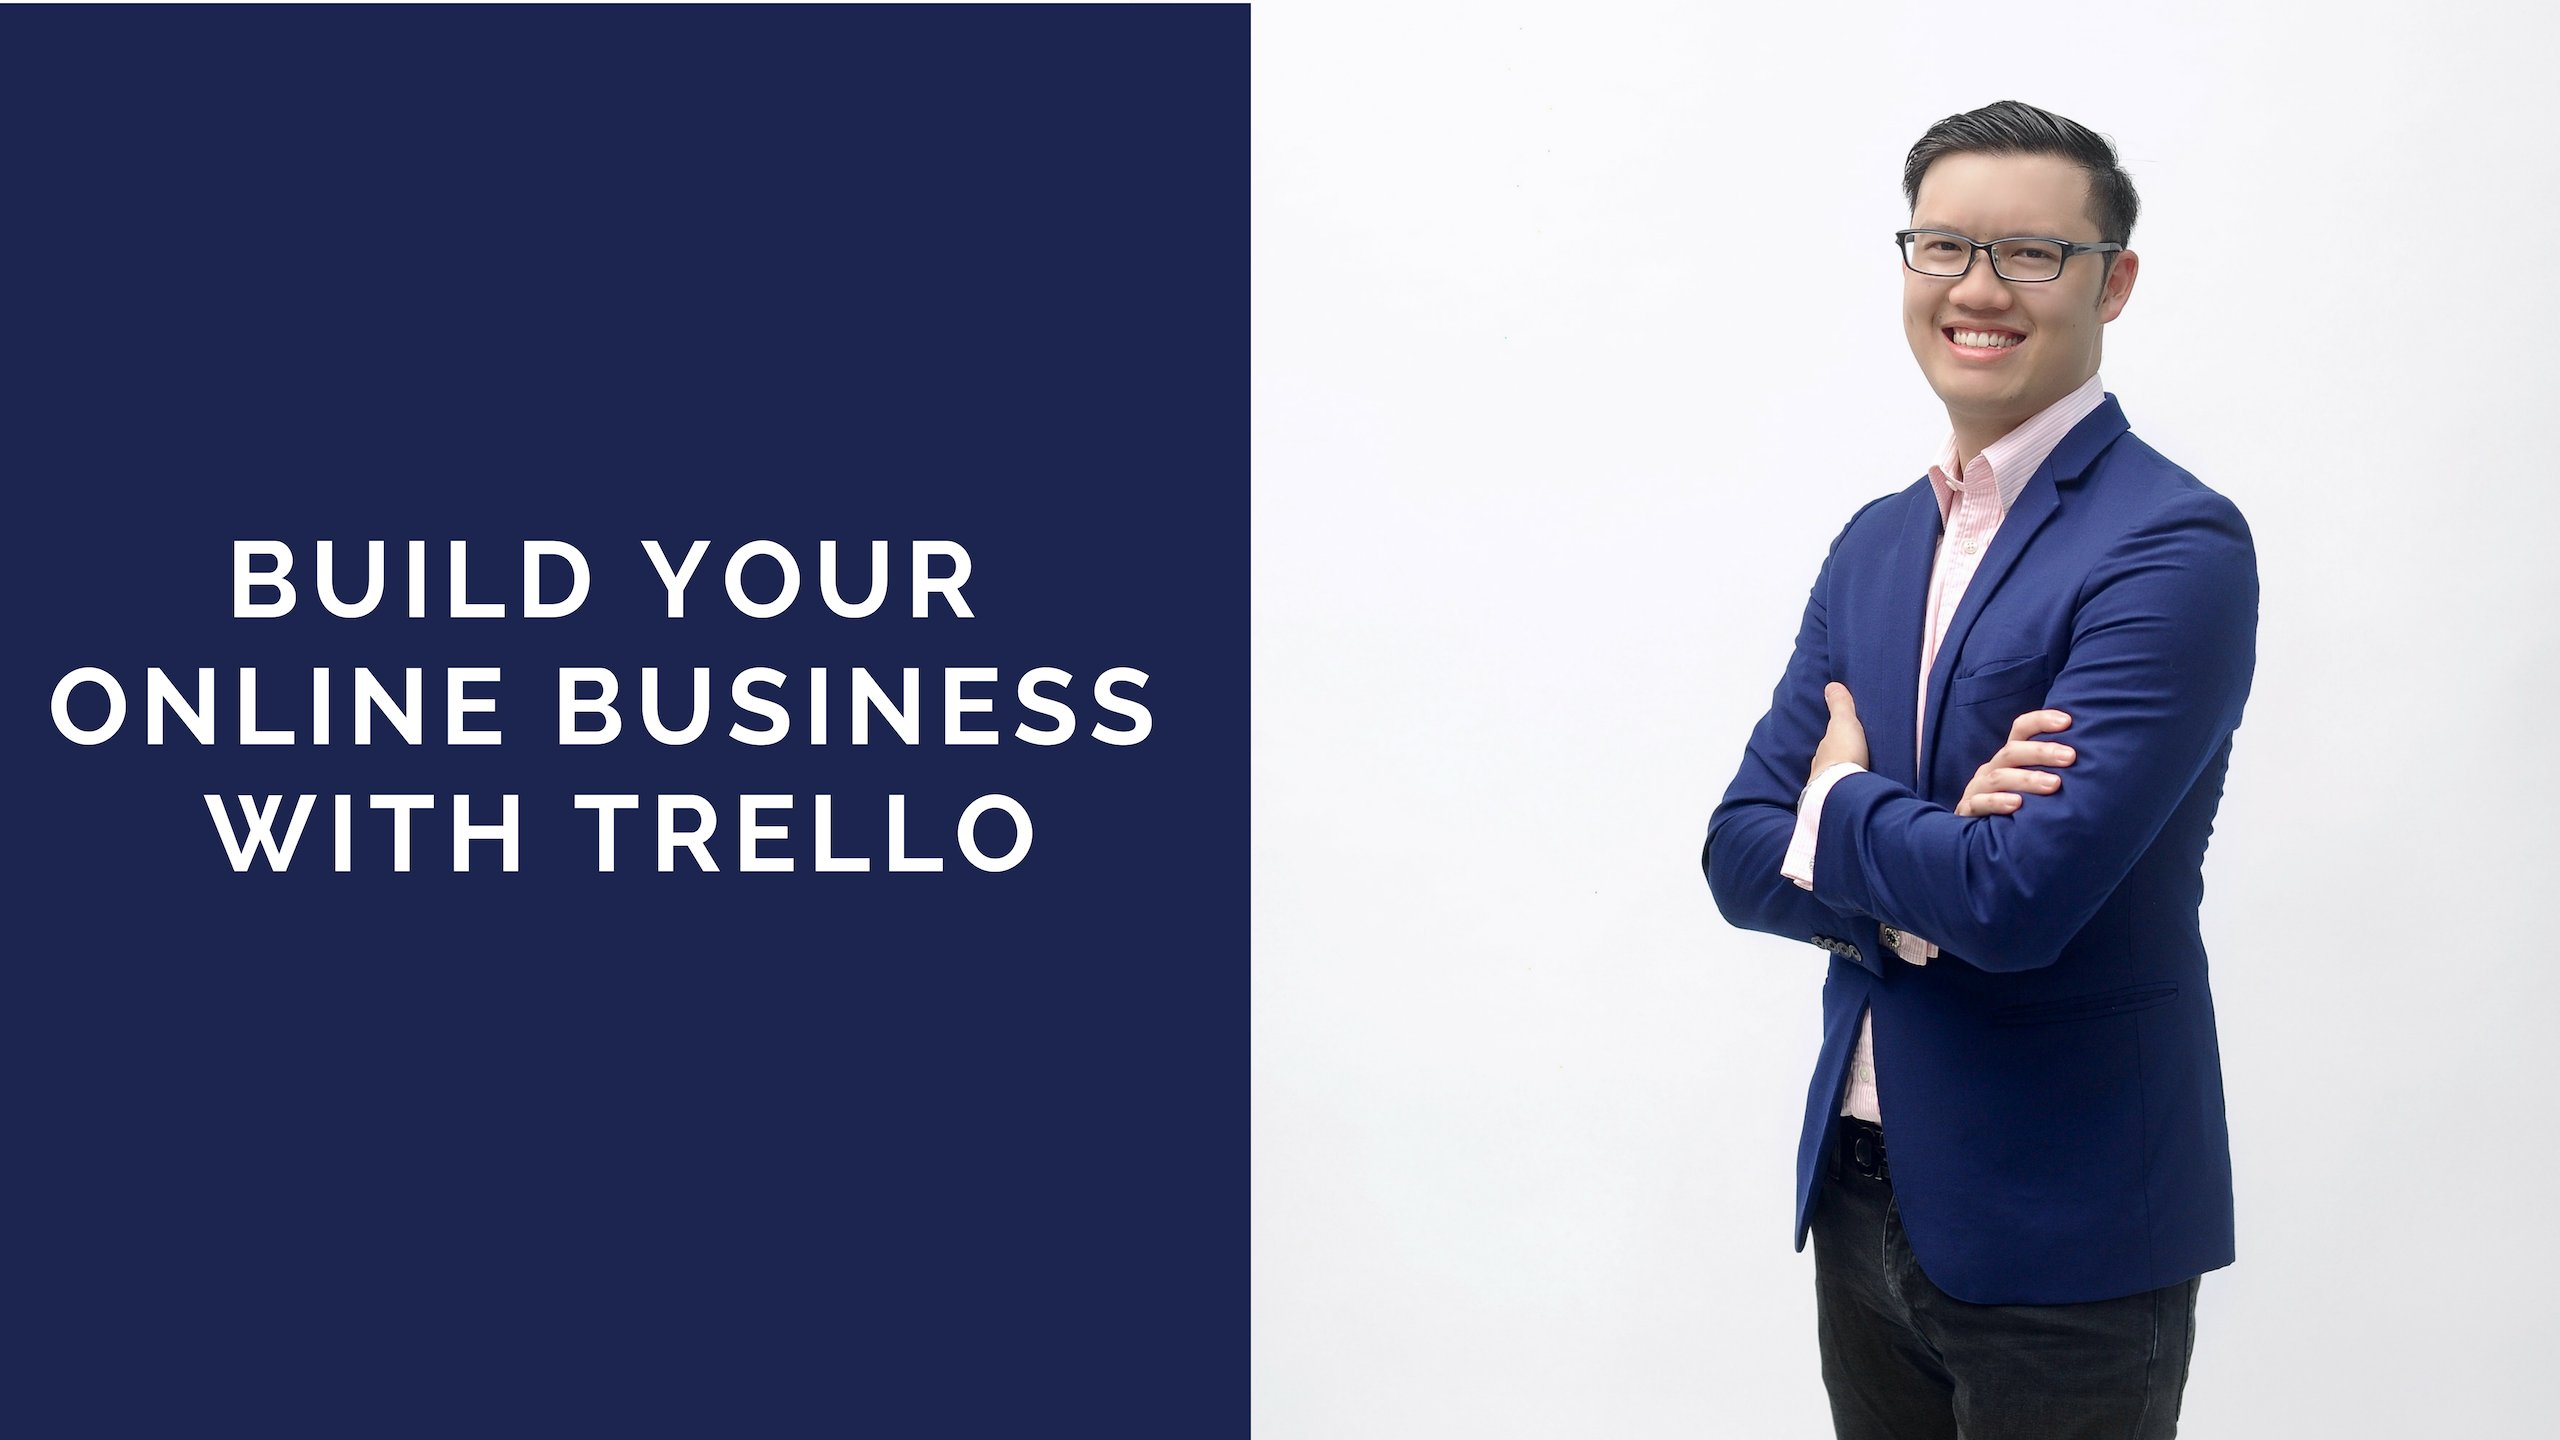 Build Your Online Business with Trello